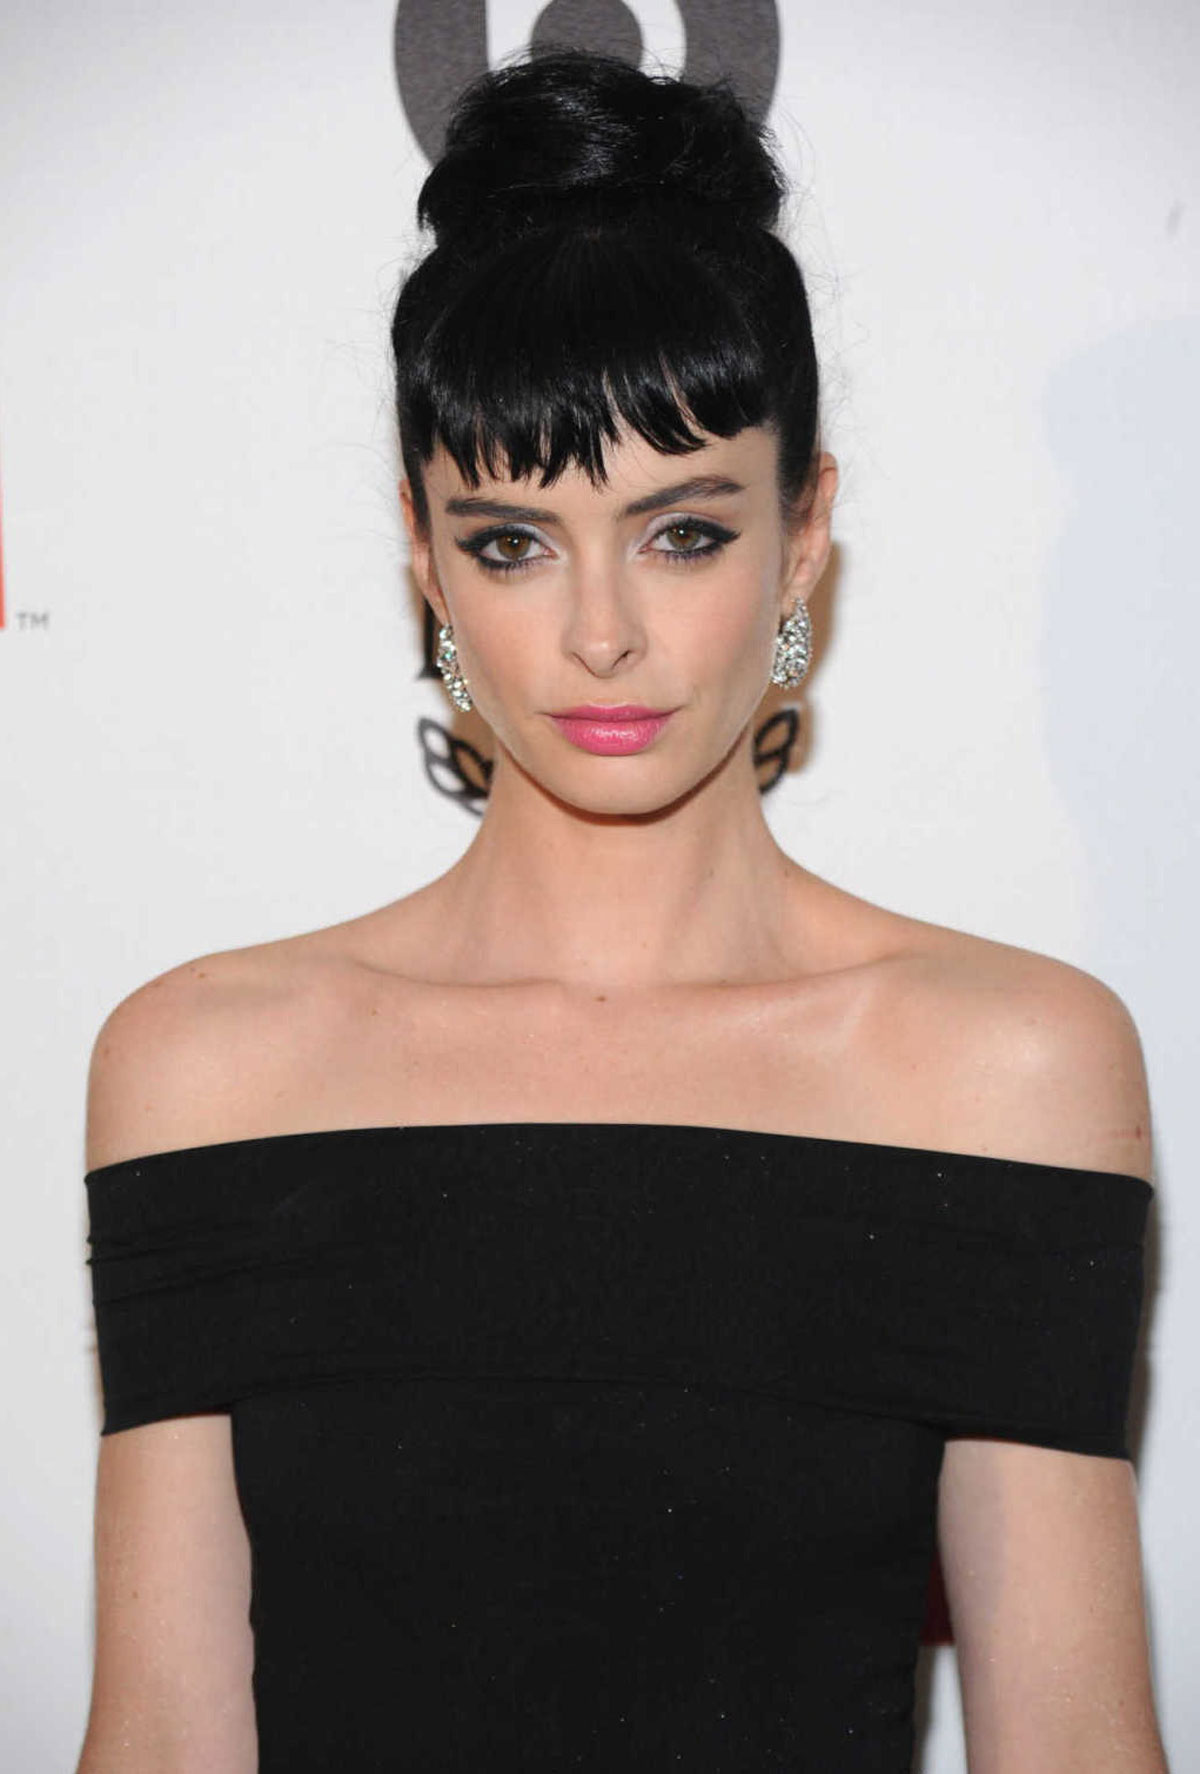 Krysten Ritter Cover: KRYSTEN RITTER At Coca-Cola Ekocycle Brand Launch In New